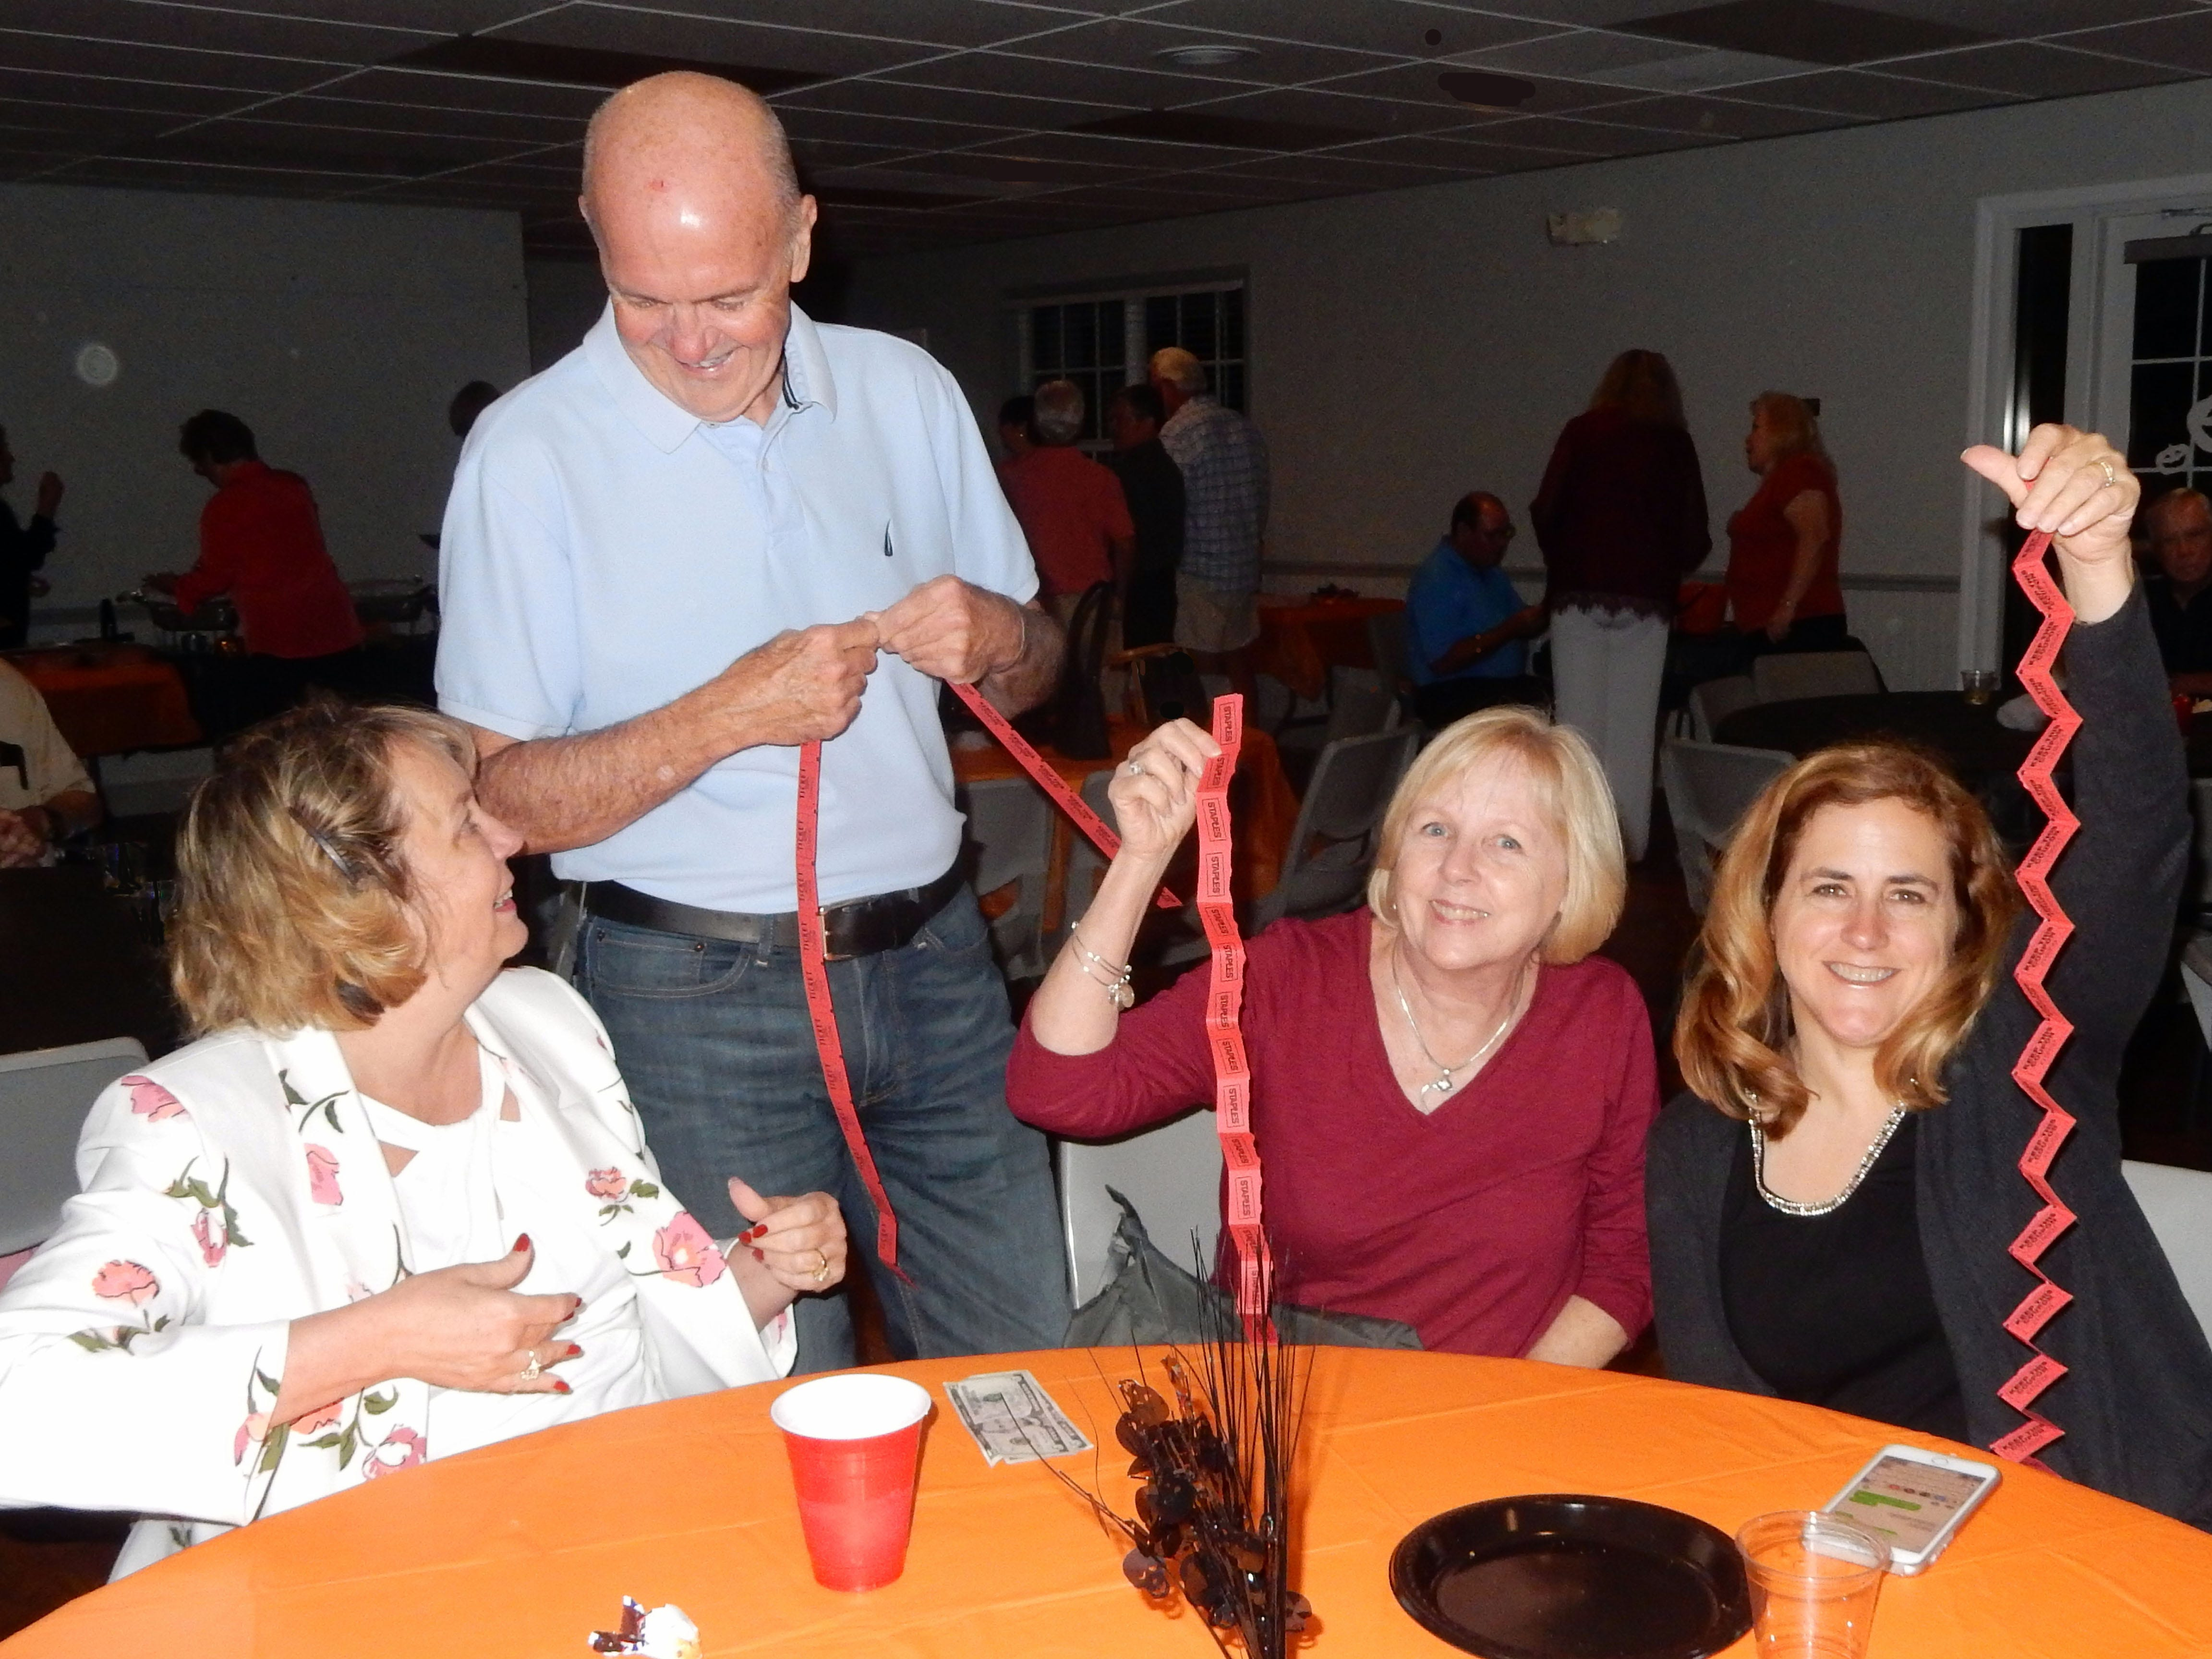 Kim Prado, left, Joe Walsh, Leslie Spurlock and Laurie Collings at the Exchange Clubs Halloween Party.